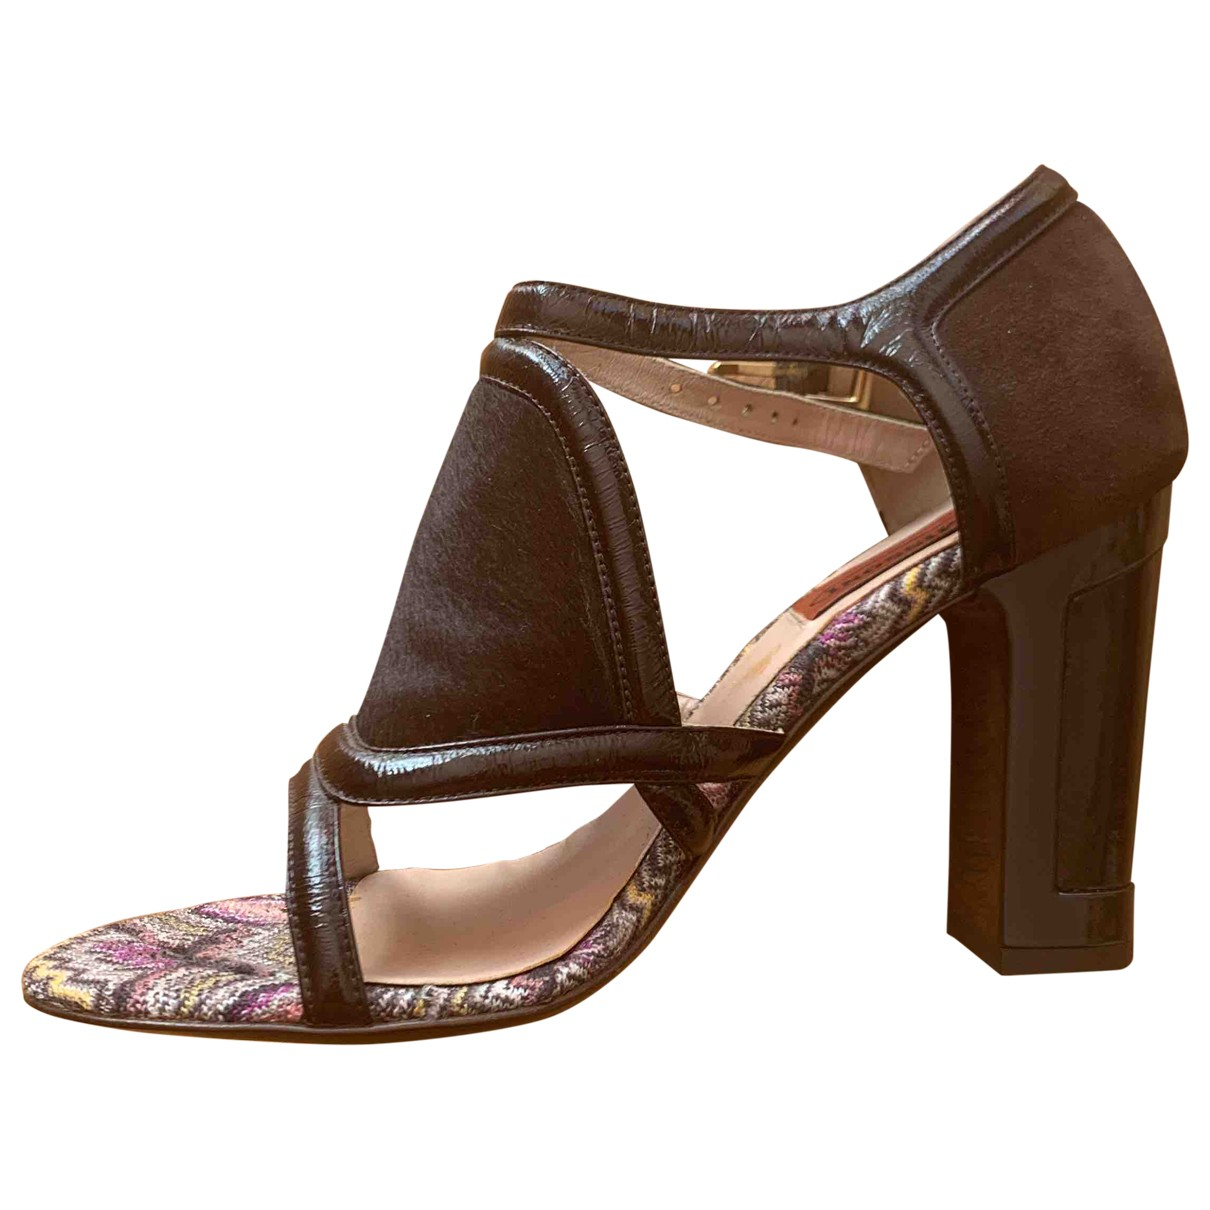 Missoni \N Brown Leather Sandals for Women 36.5 EU